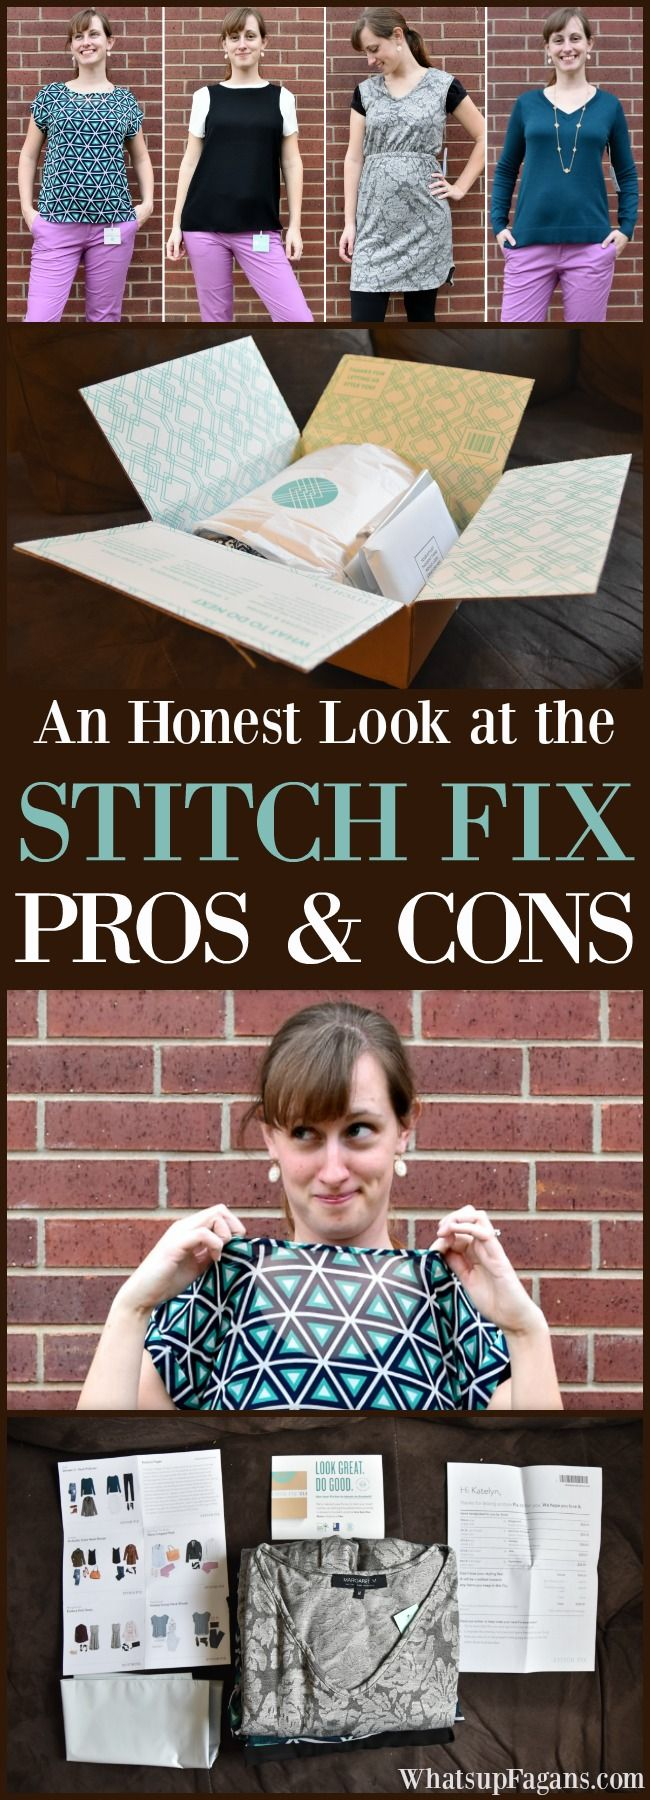 Stitch Fix Pros and Cons | Stitch Fix Cost |Negative Review  Positive Review | Bad Review | Honest Review | Clothing Subscription box | Fashion | Style | Personal Stylist | Trends | Wardrobe | Examples | Unboxing